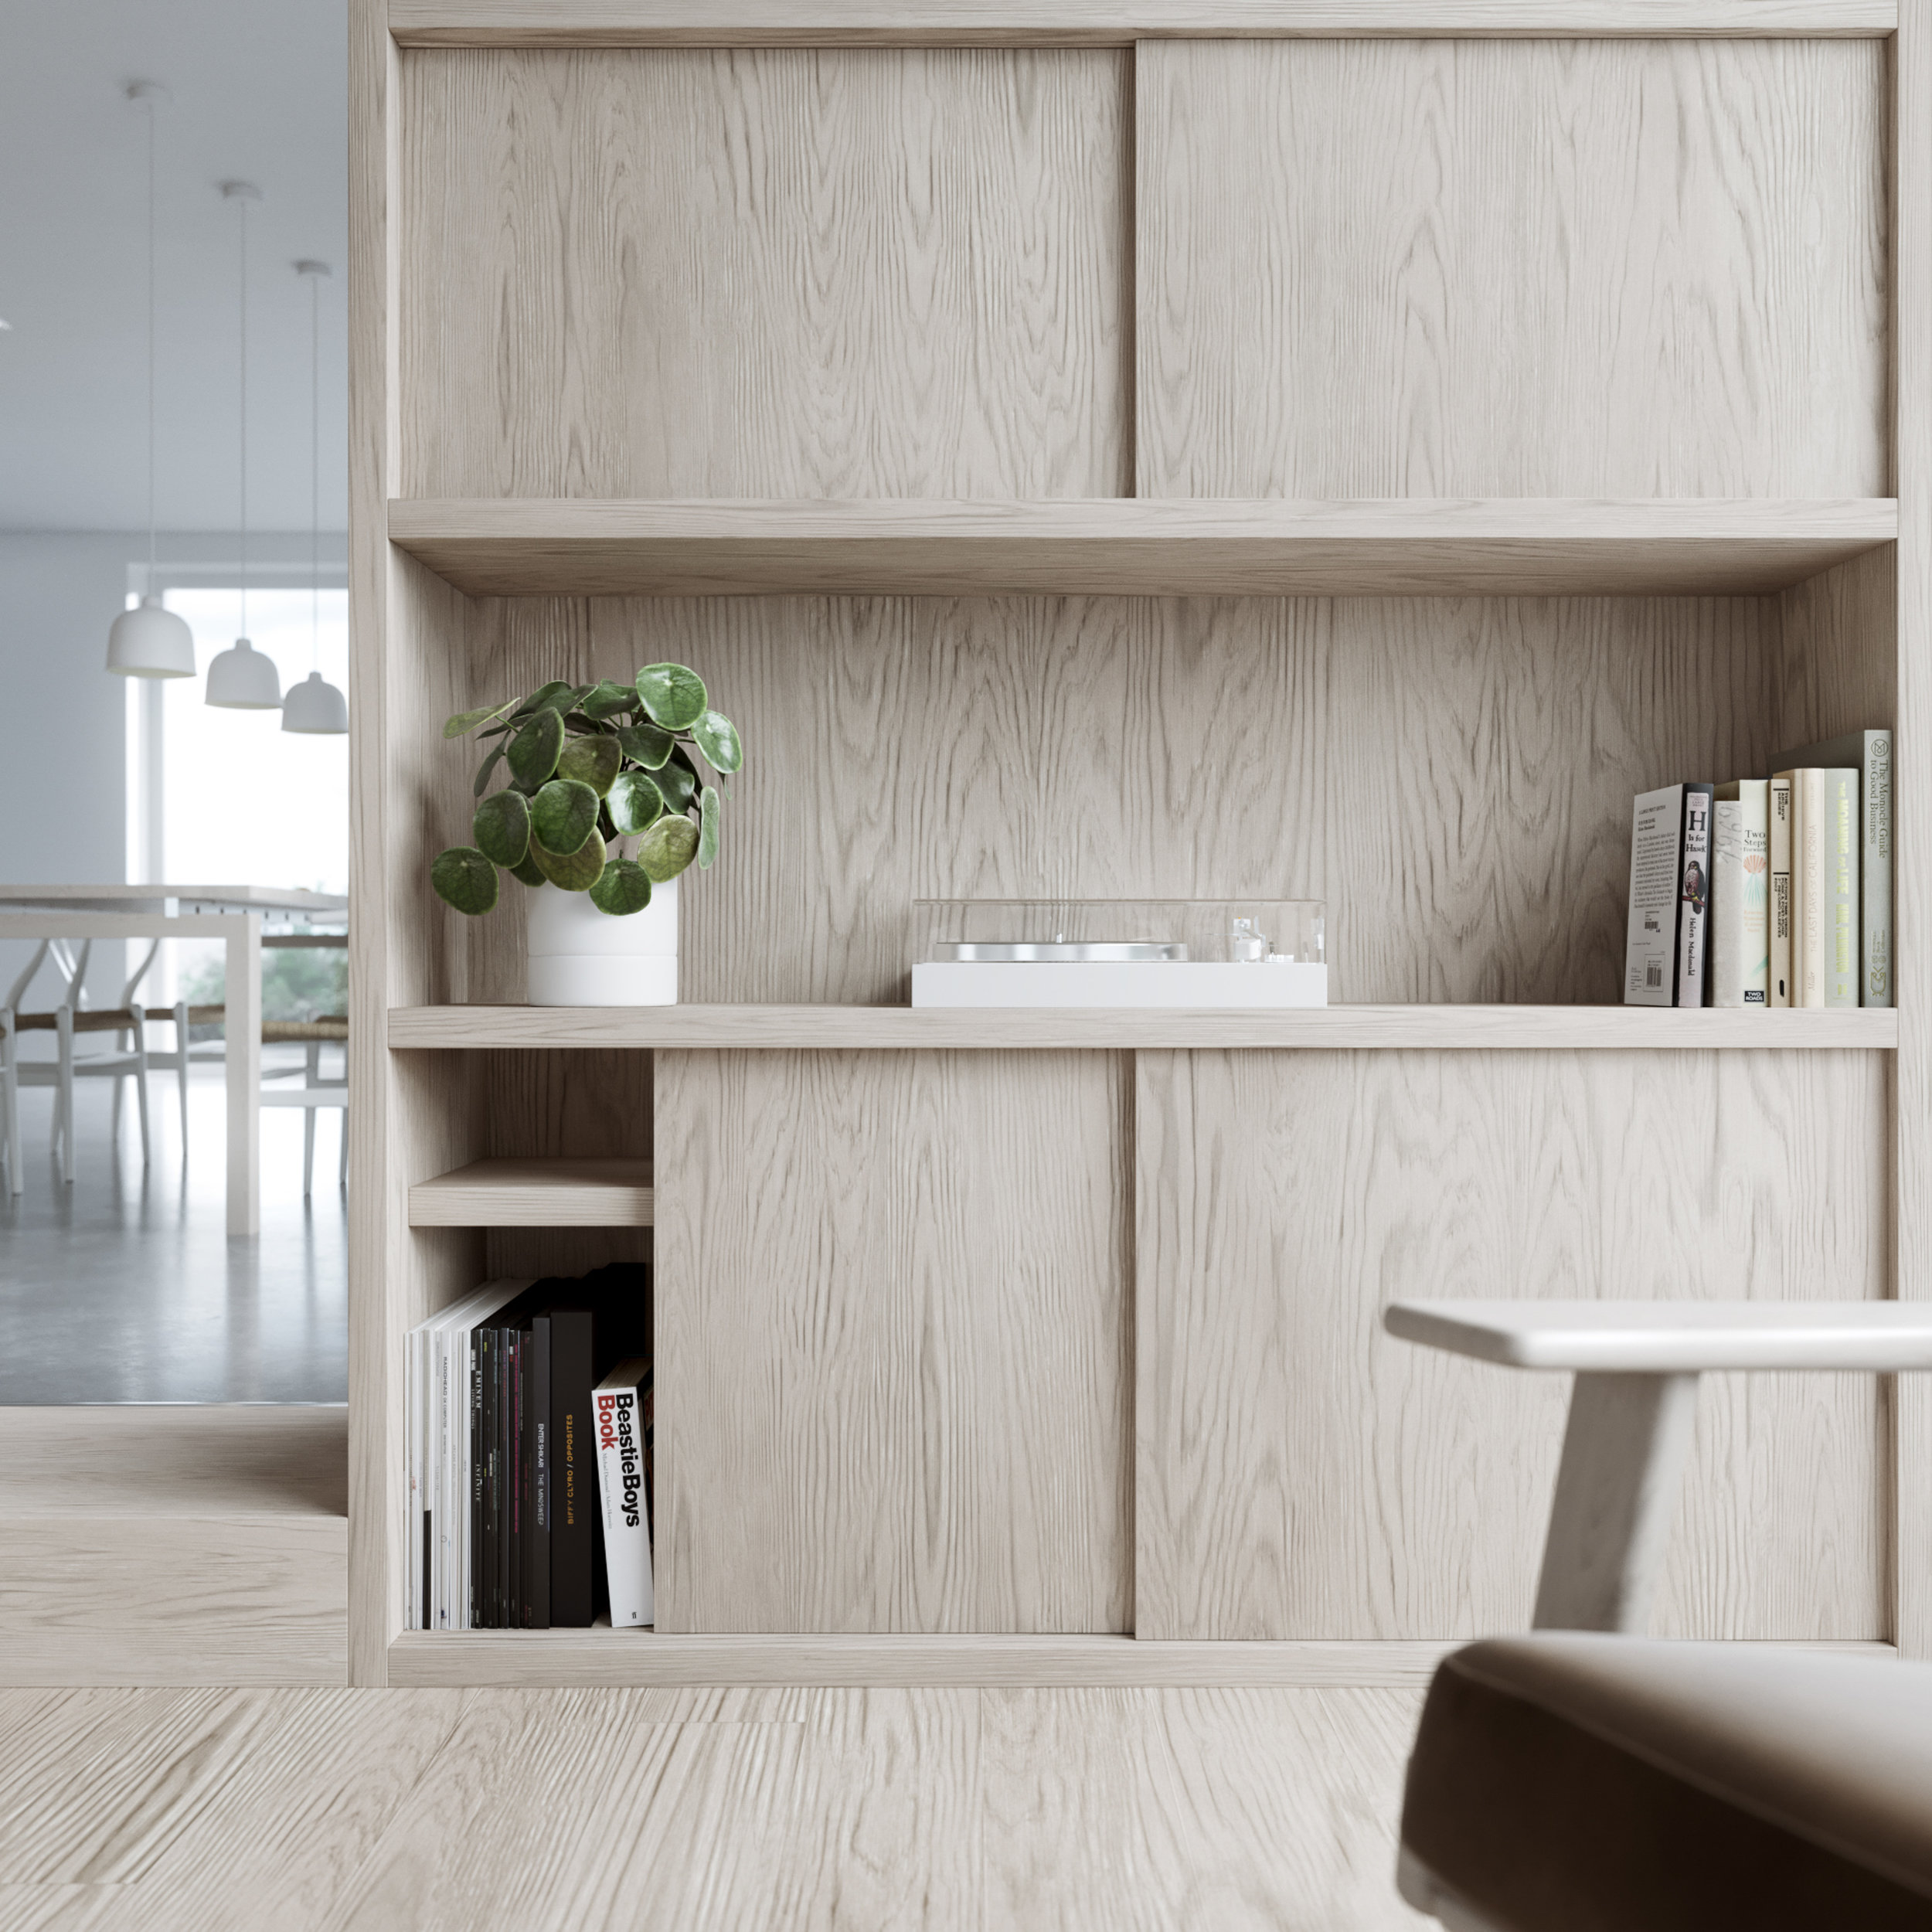 poliigon_task_wood_shelf_crop.jpg